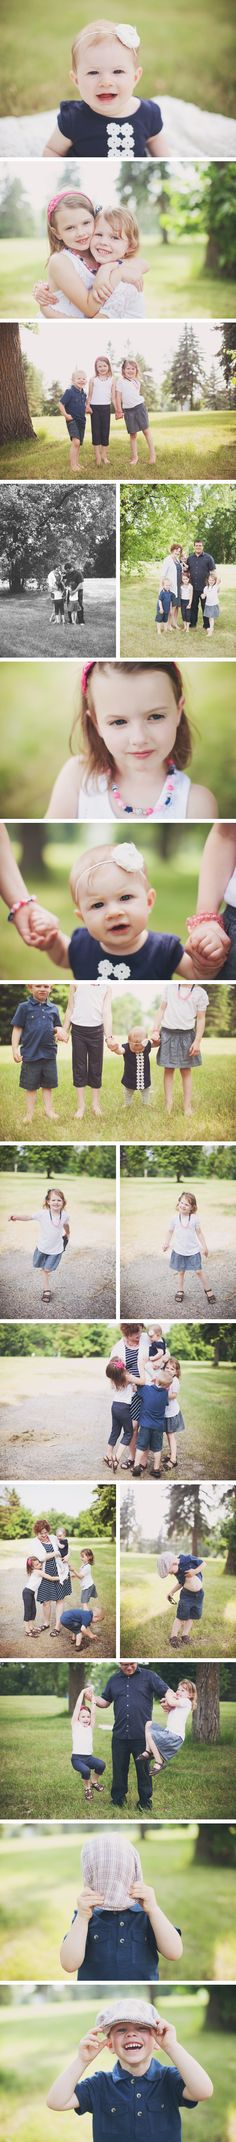 The M Family | Columbia, MD Family Photographer